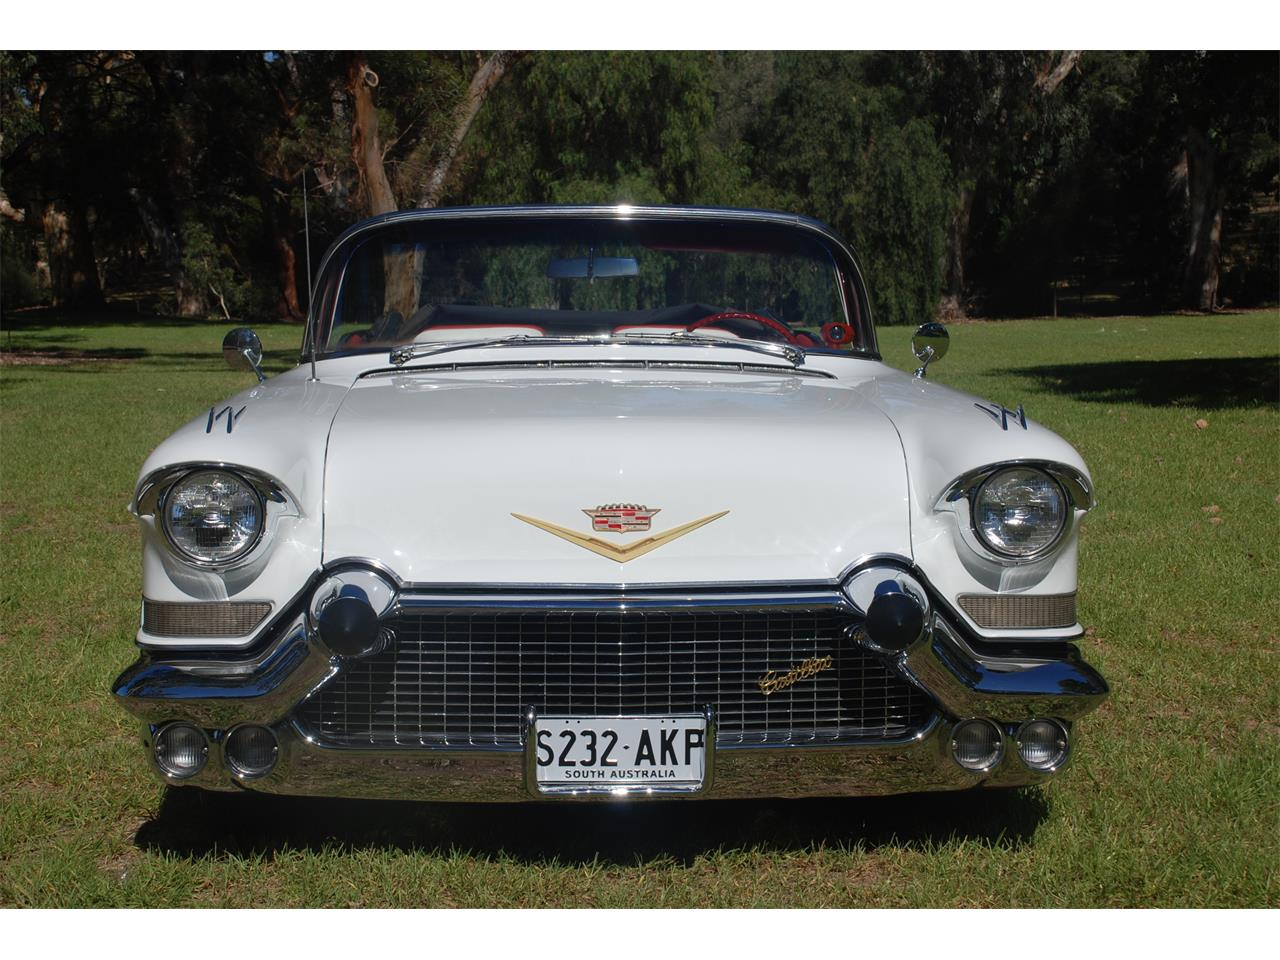 Large Picture of '57 Eldorado Biarritz located in  - $120,000.00 Offered by a Private Seller - I9YC